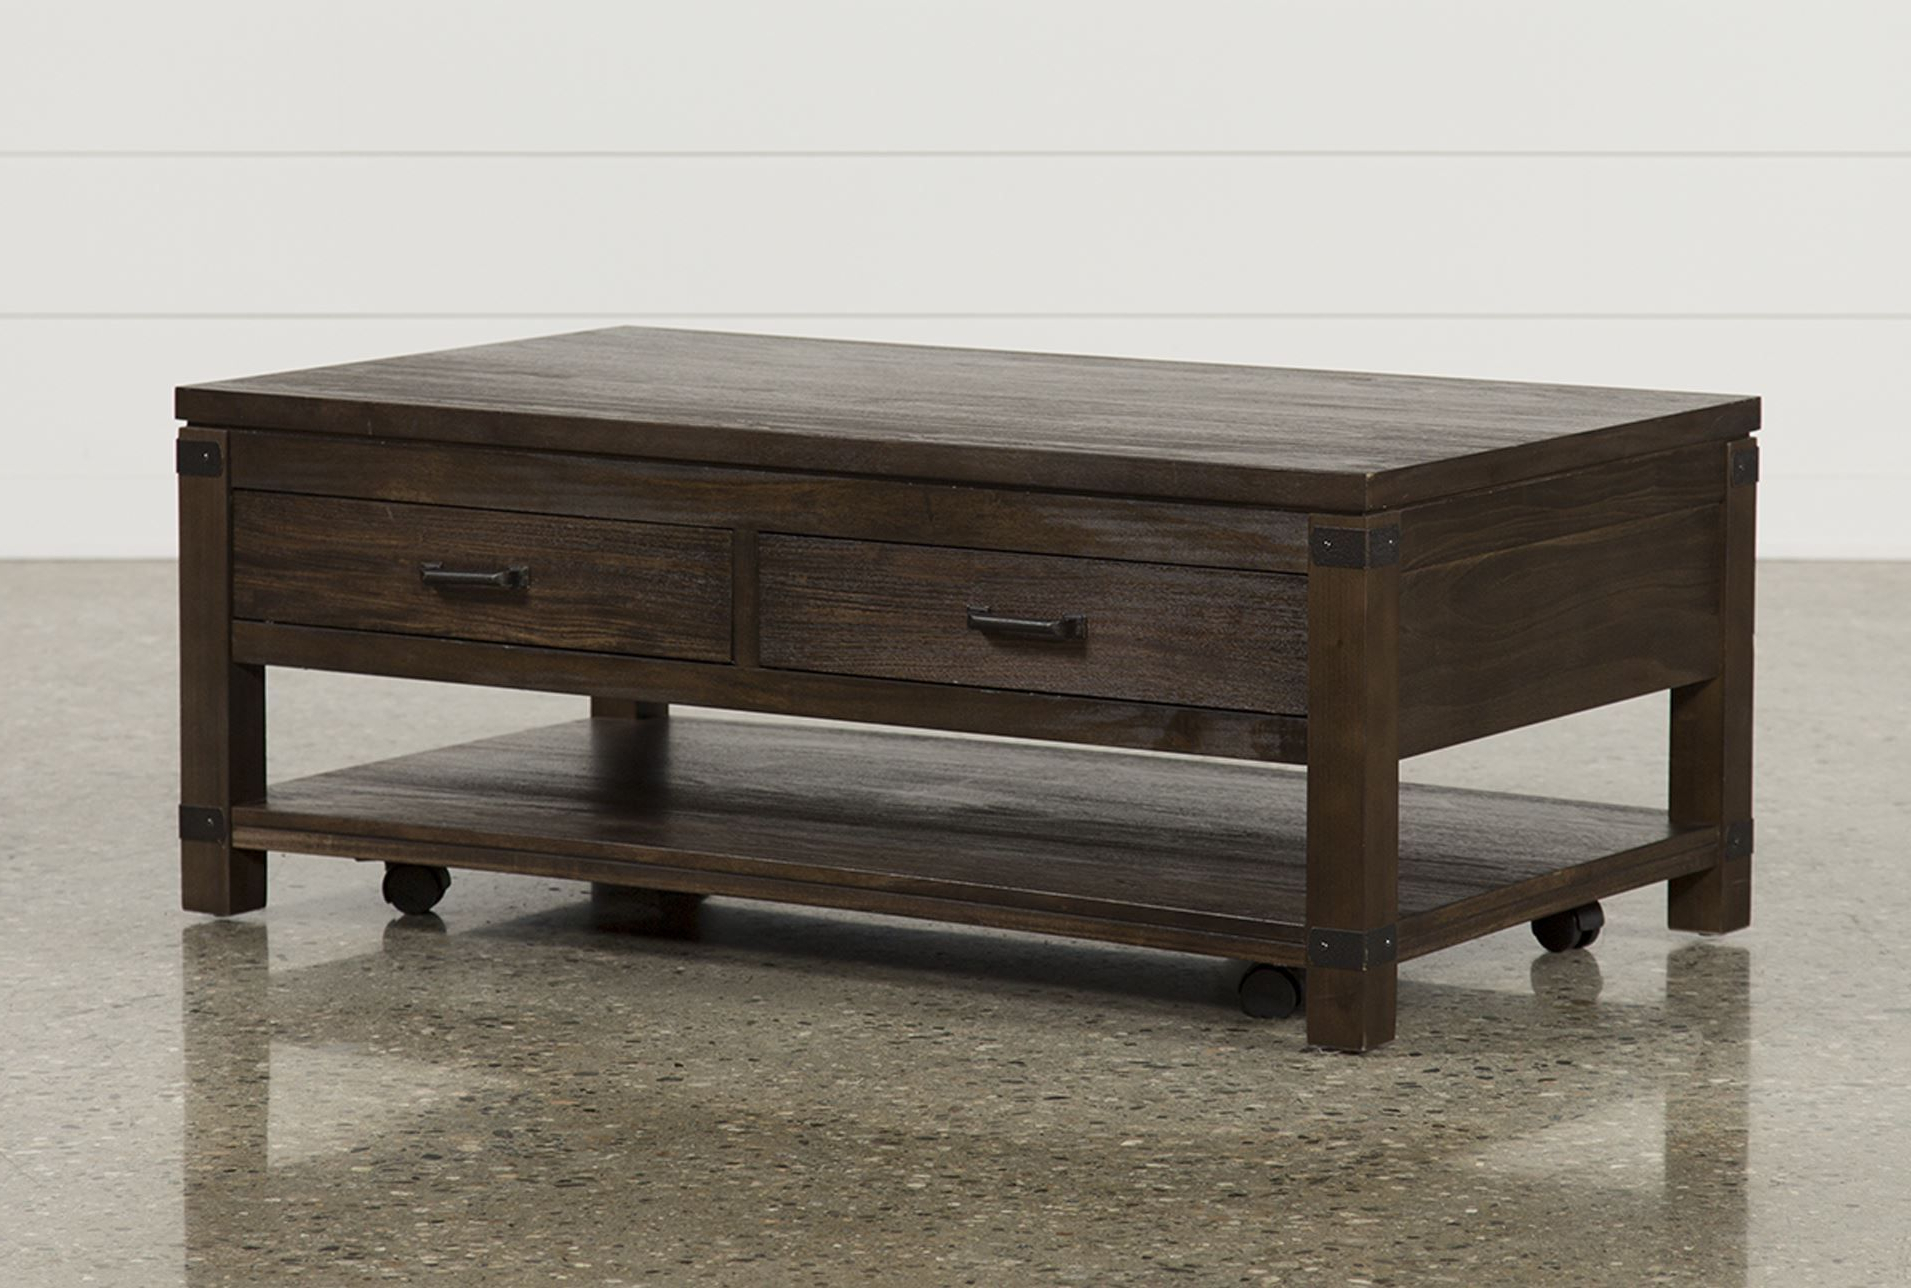 Ashburn Cocktail Tables Regarding Popular Livingston Cocktail Table W/drawers, Brown, Coffee Tables (View 5 of 20)